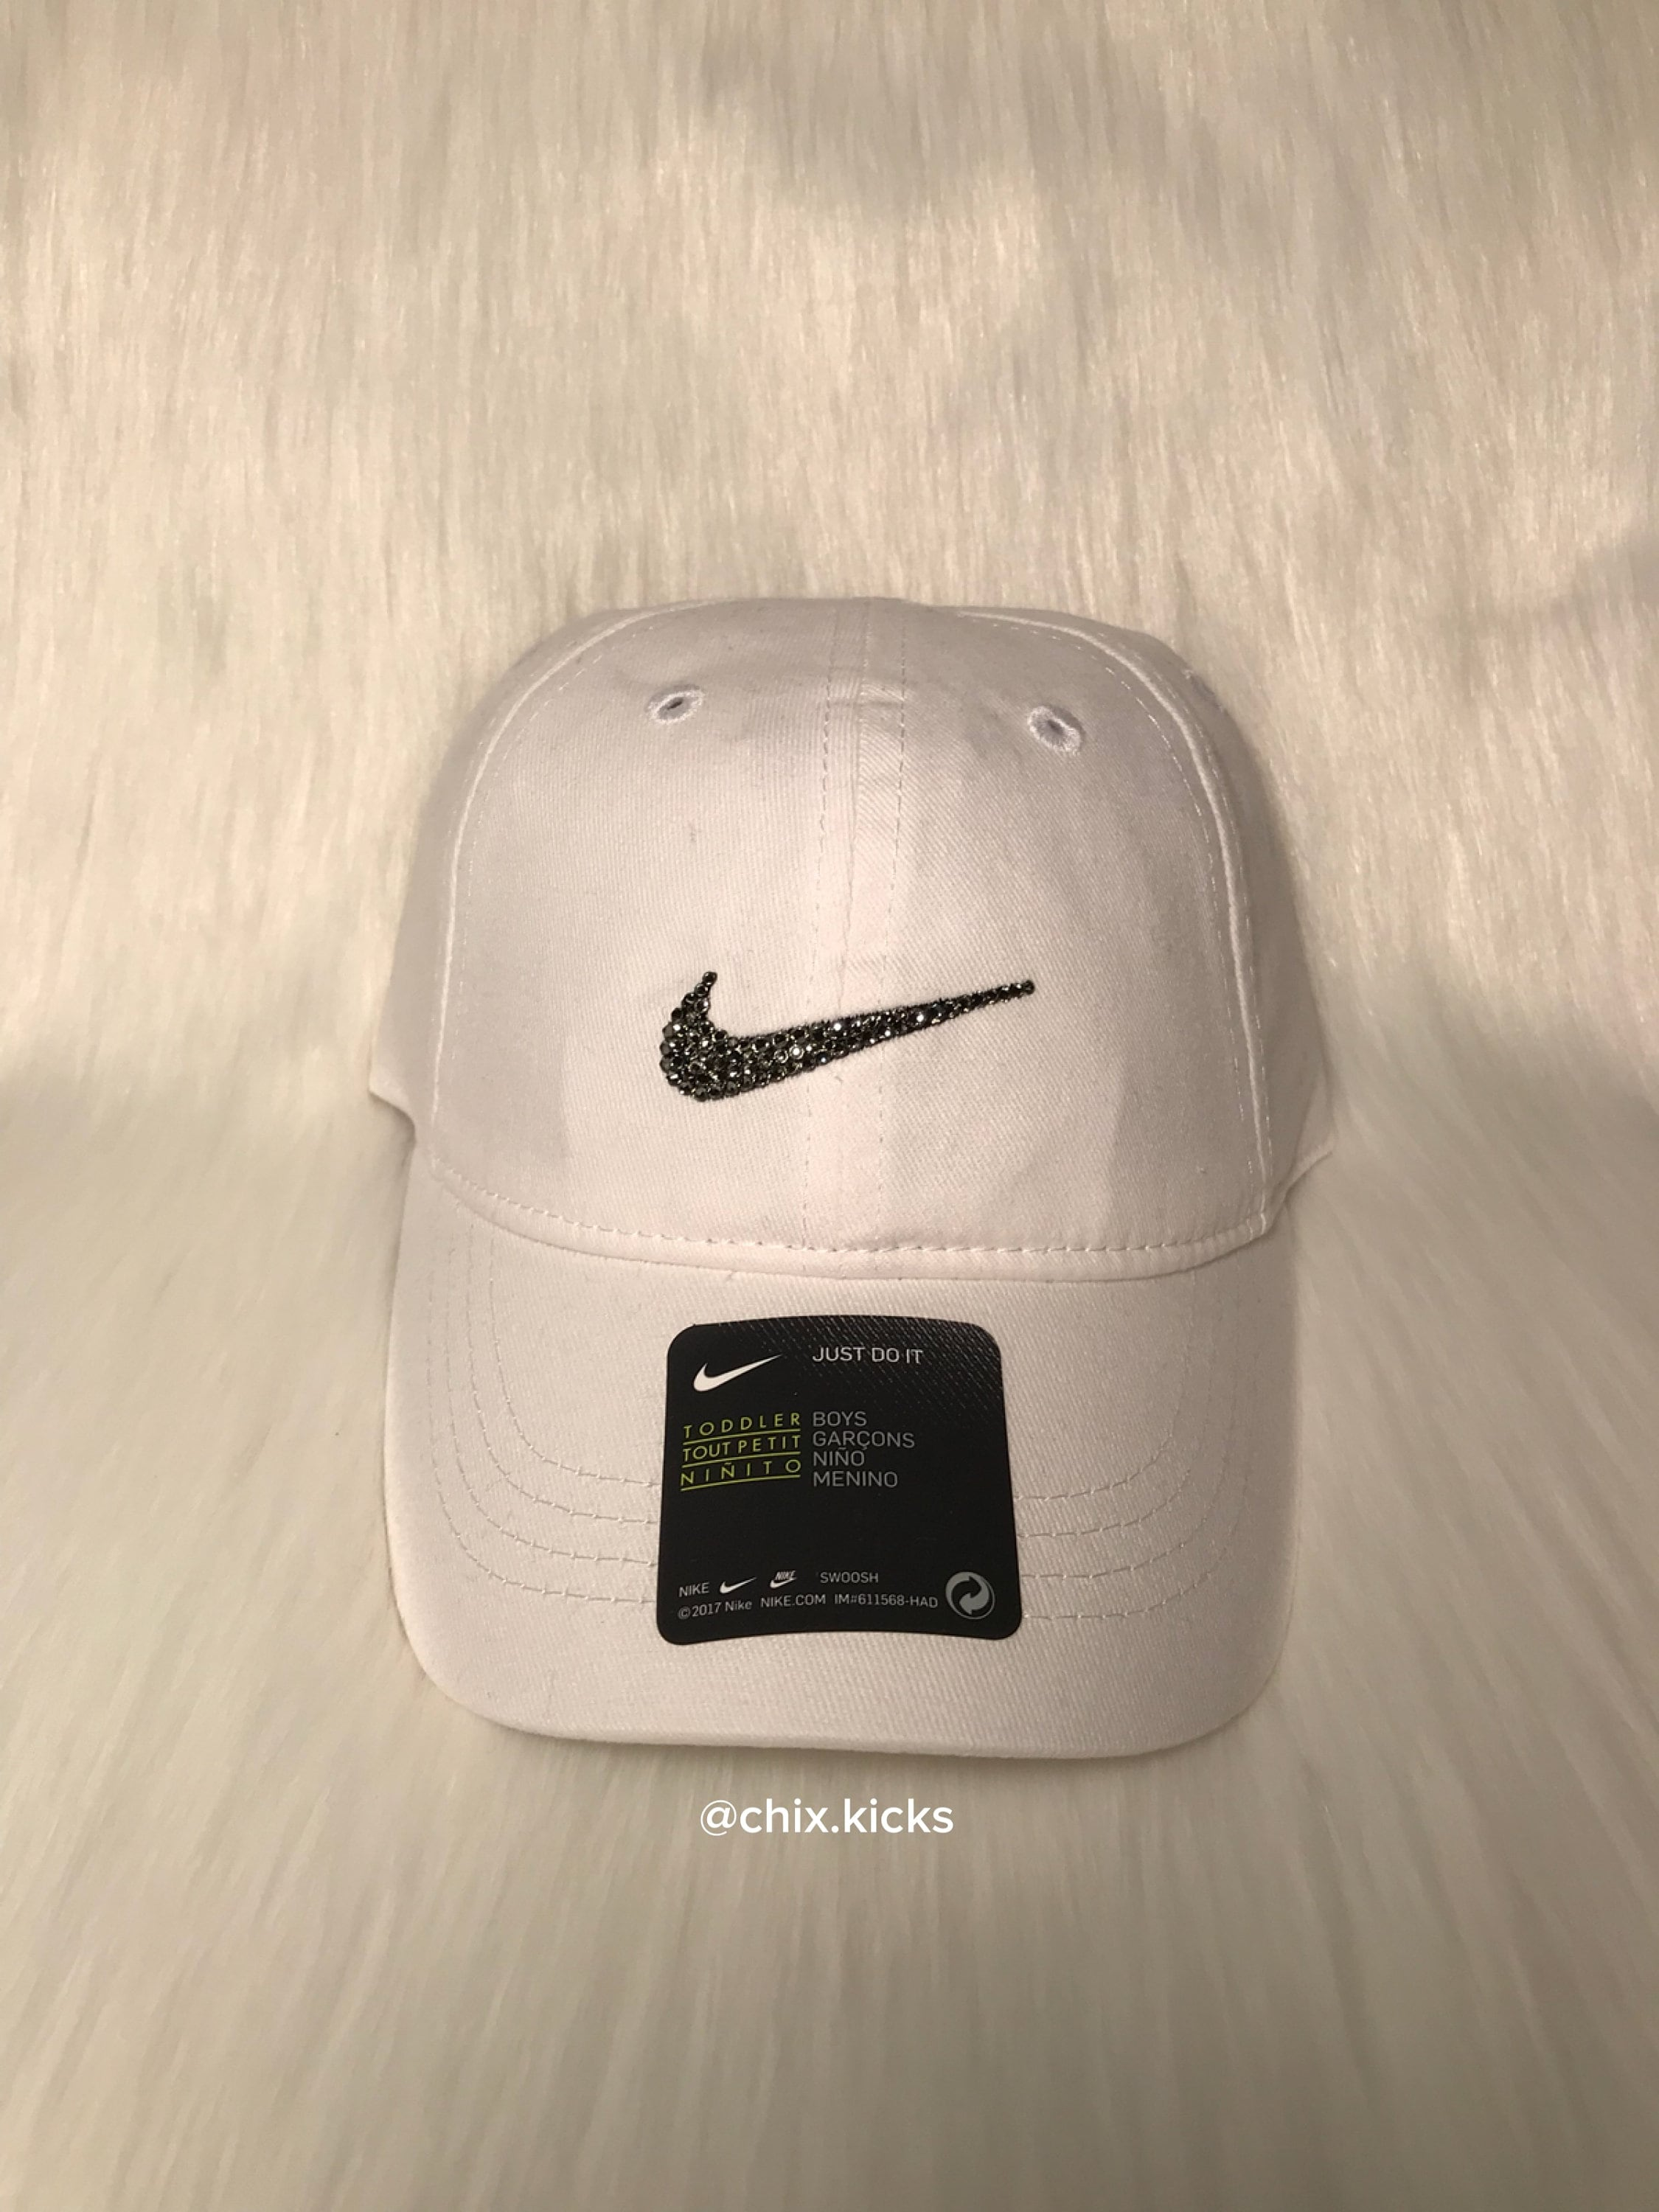 204fb514f6b40 ... cheap 12 24m toddler bling nike adjustable hat white made with etsy  db0eb 9a5d3